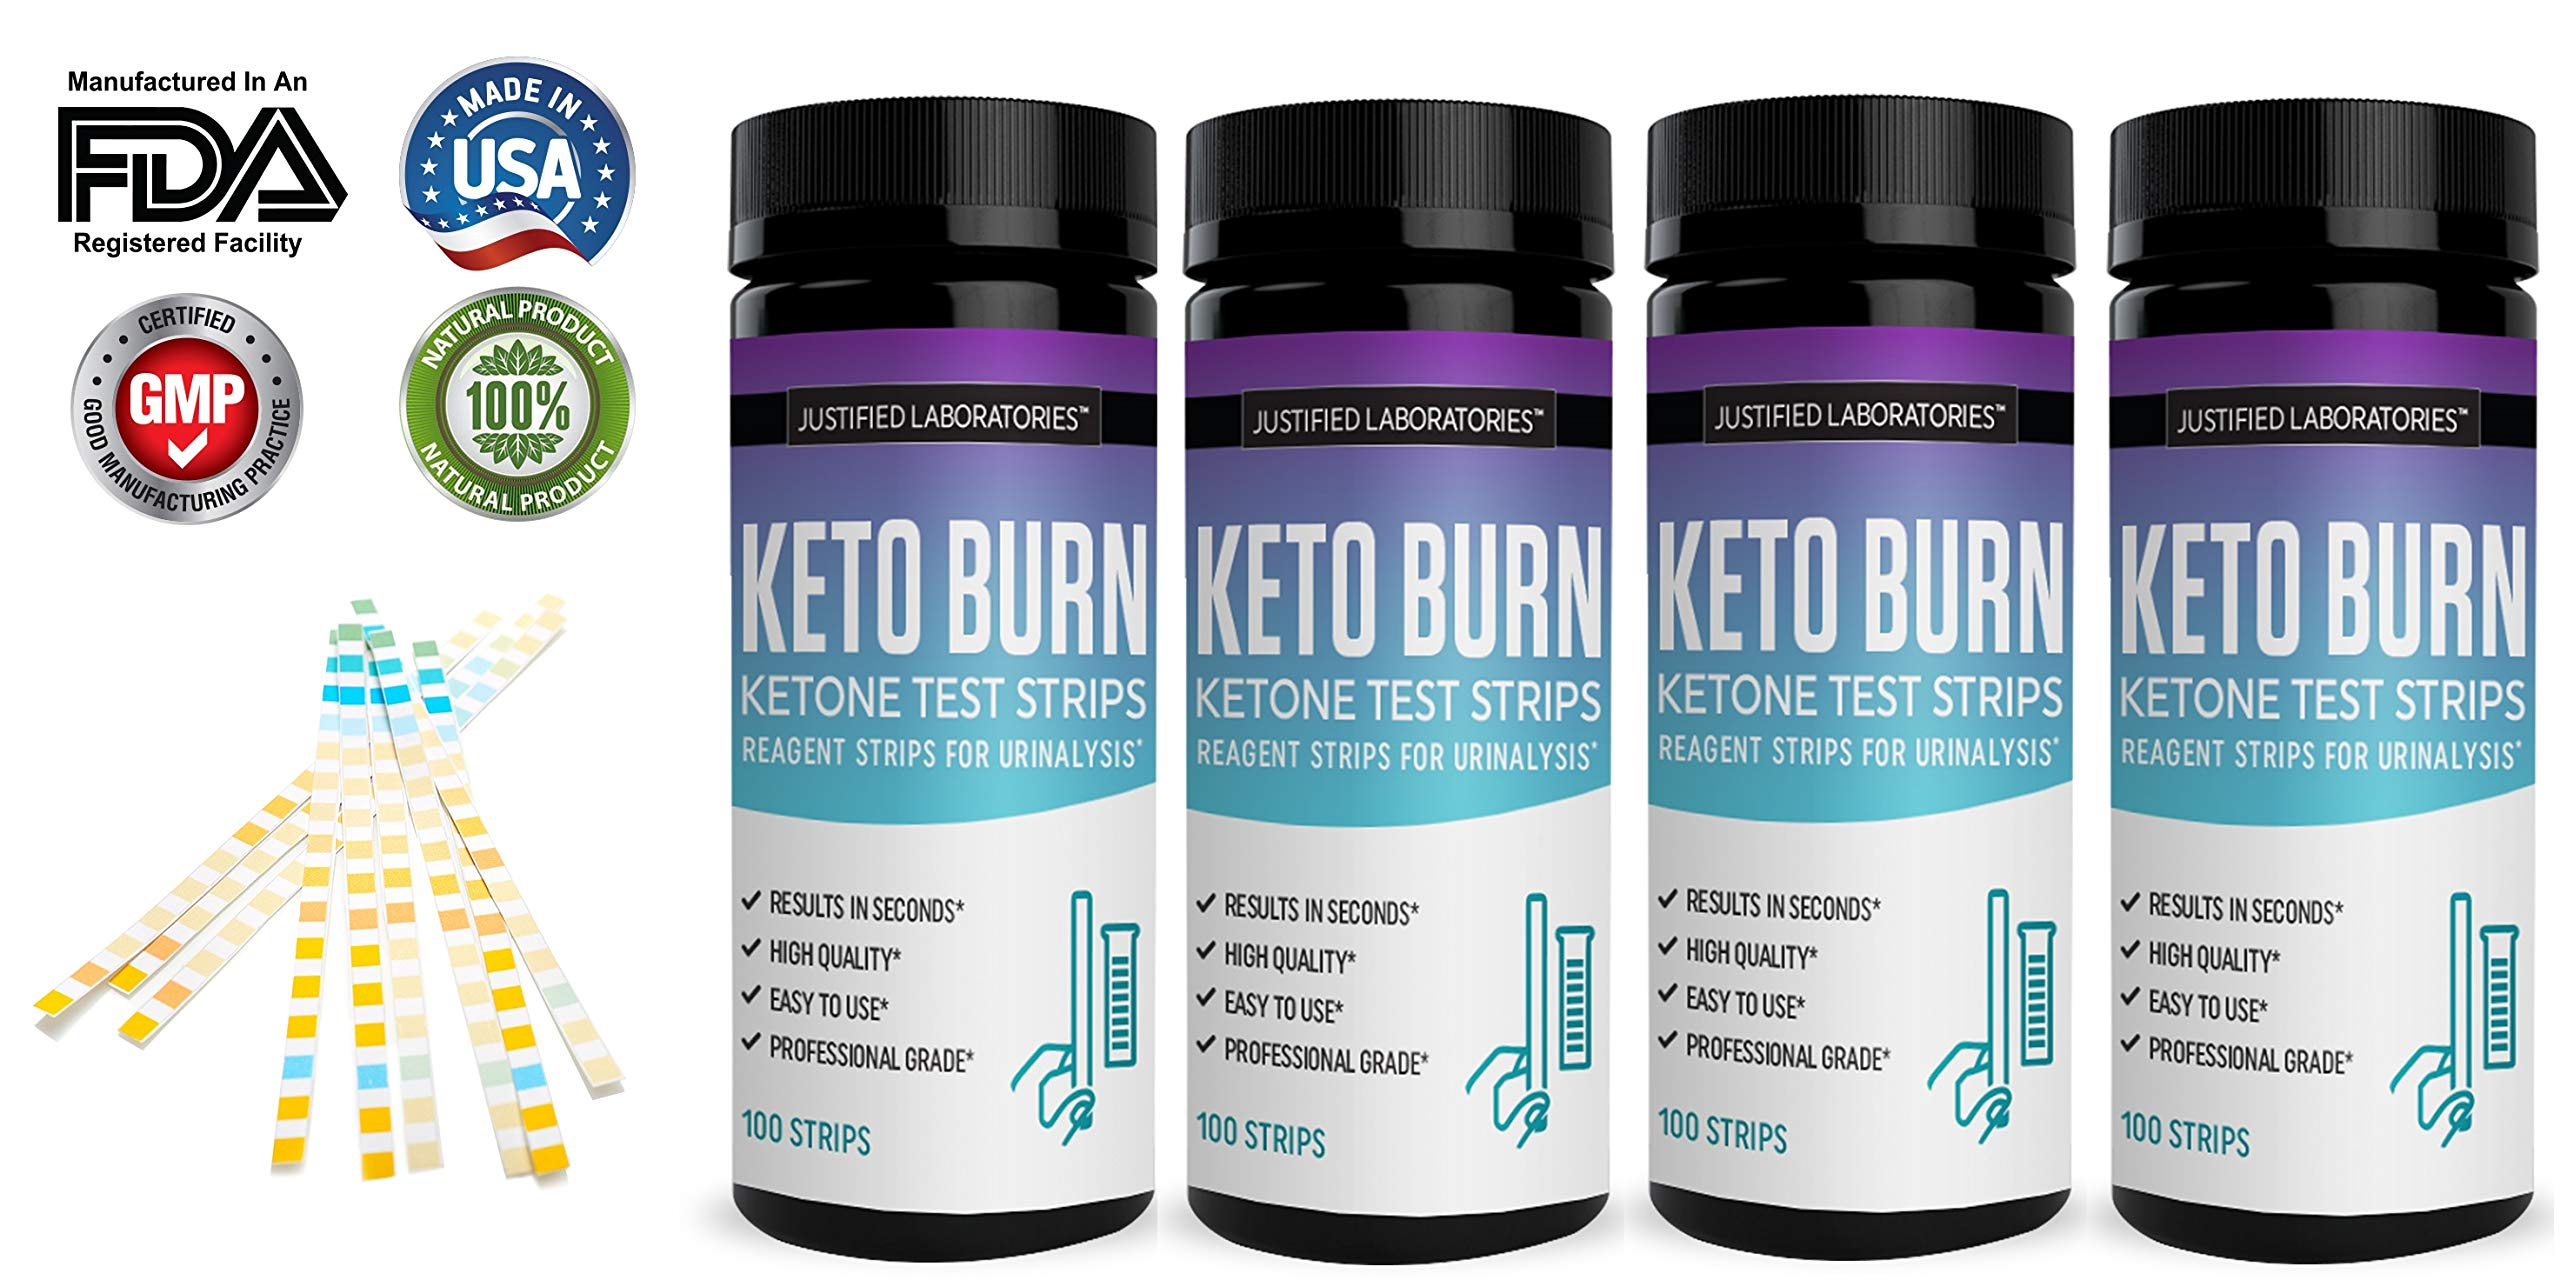 Keto Test Strips Testing Ketosis Levels on Low Carb Ketogenic Diet 100 Urinalysis Tester Strips Accurate Meter Measurement of Urine Ketones Test 4 Bottles by Justified Laboratories